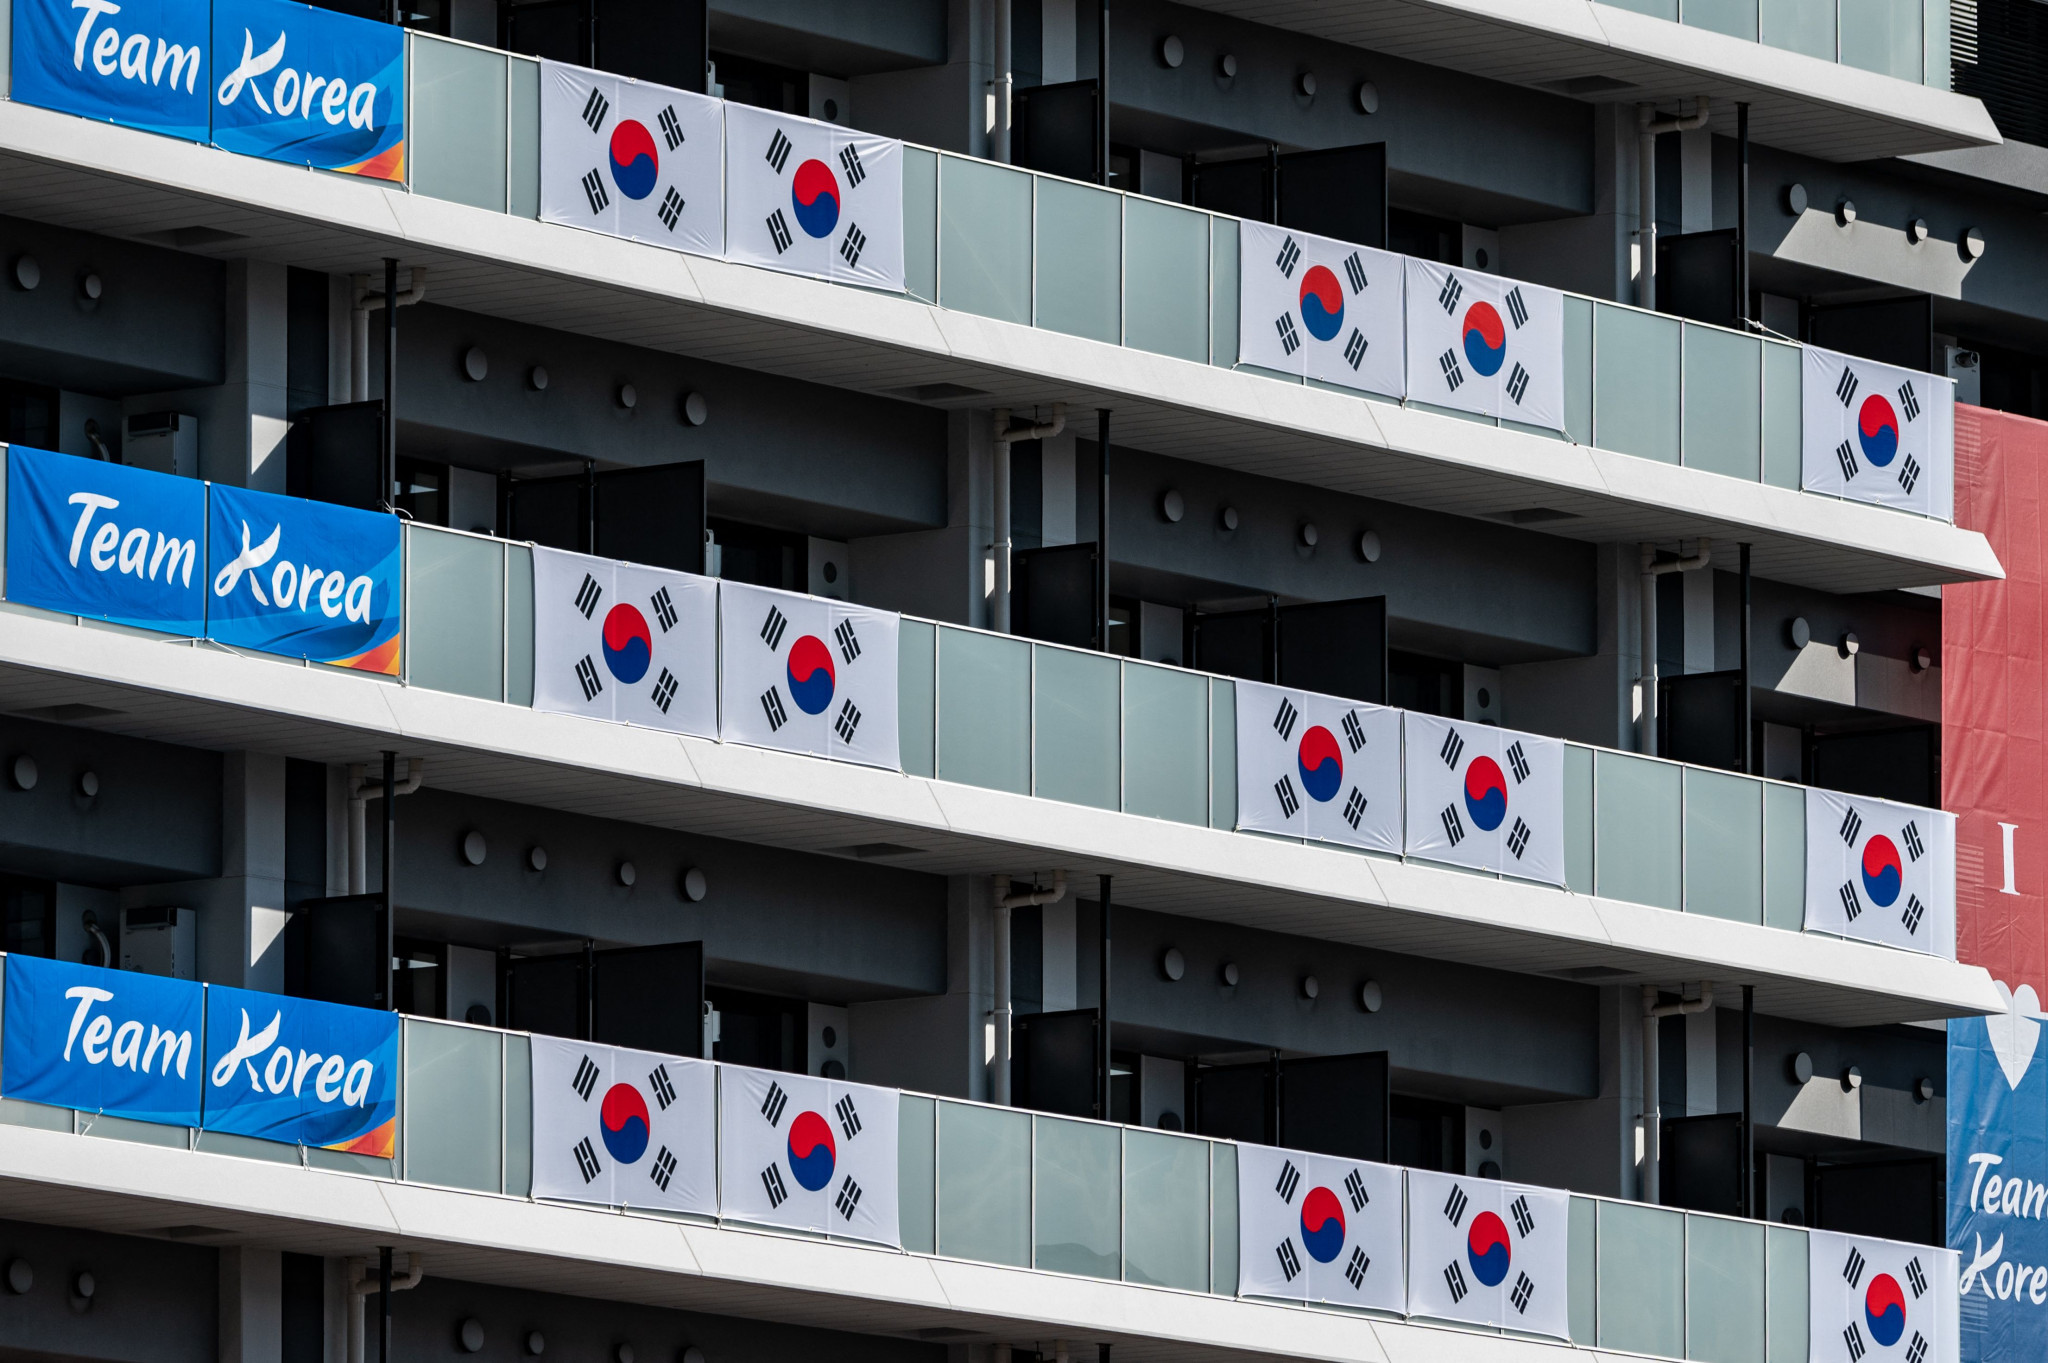 South Korea told to remove banners at Tokyo 2020 Athletes' Village by IOC